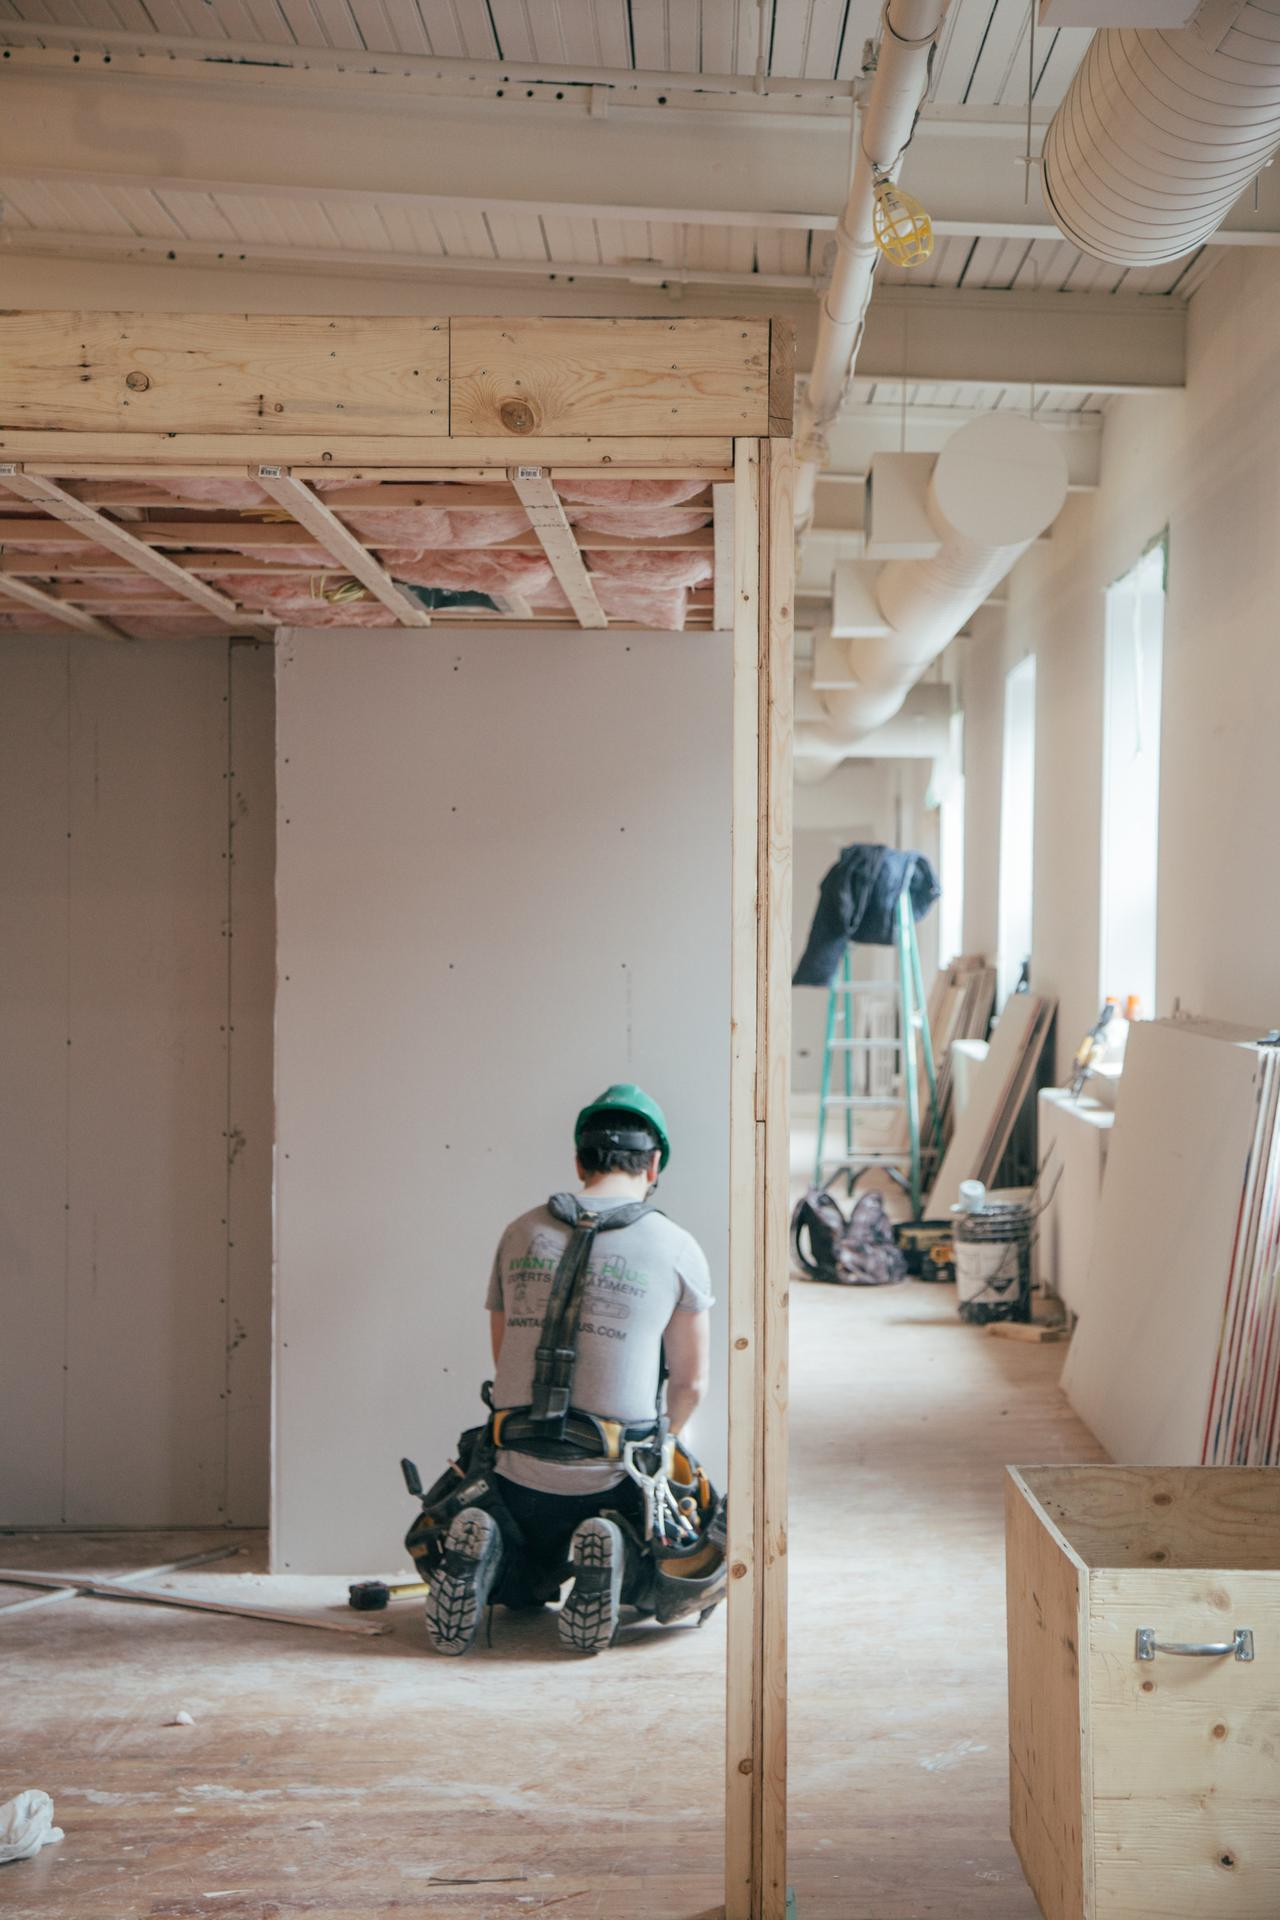 Photo of a residential renovations expert working on a home.